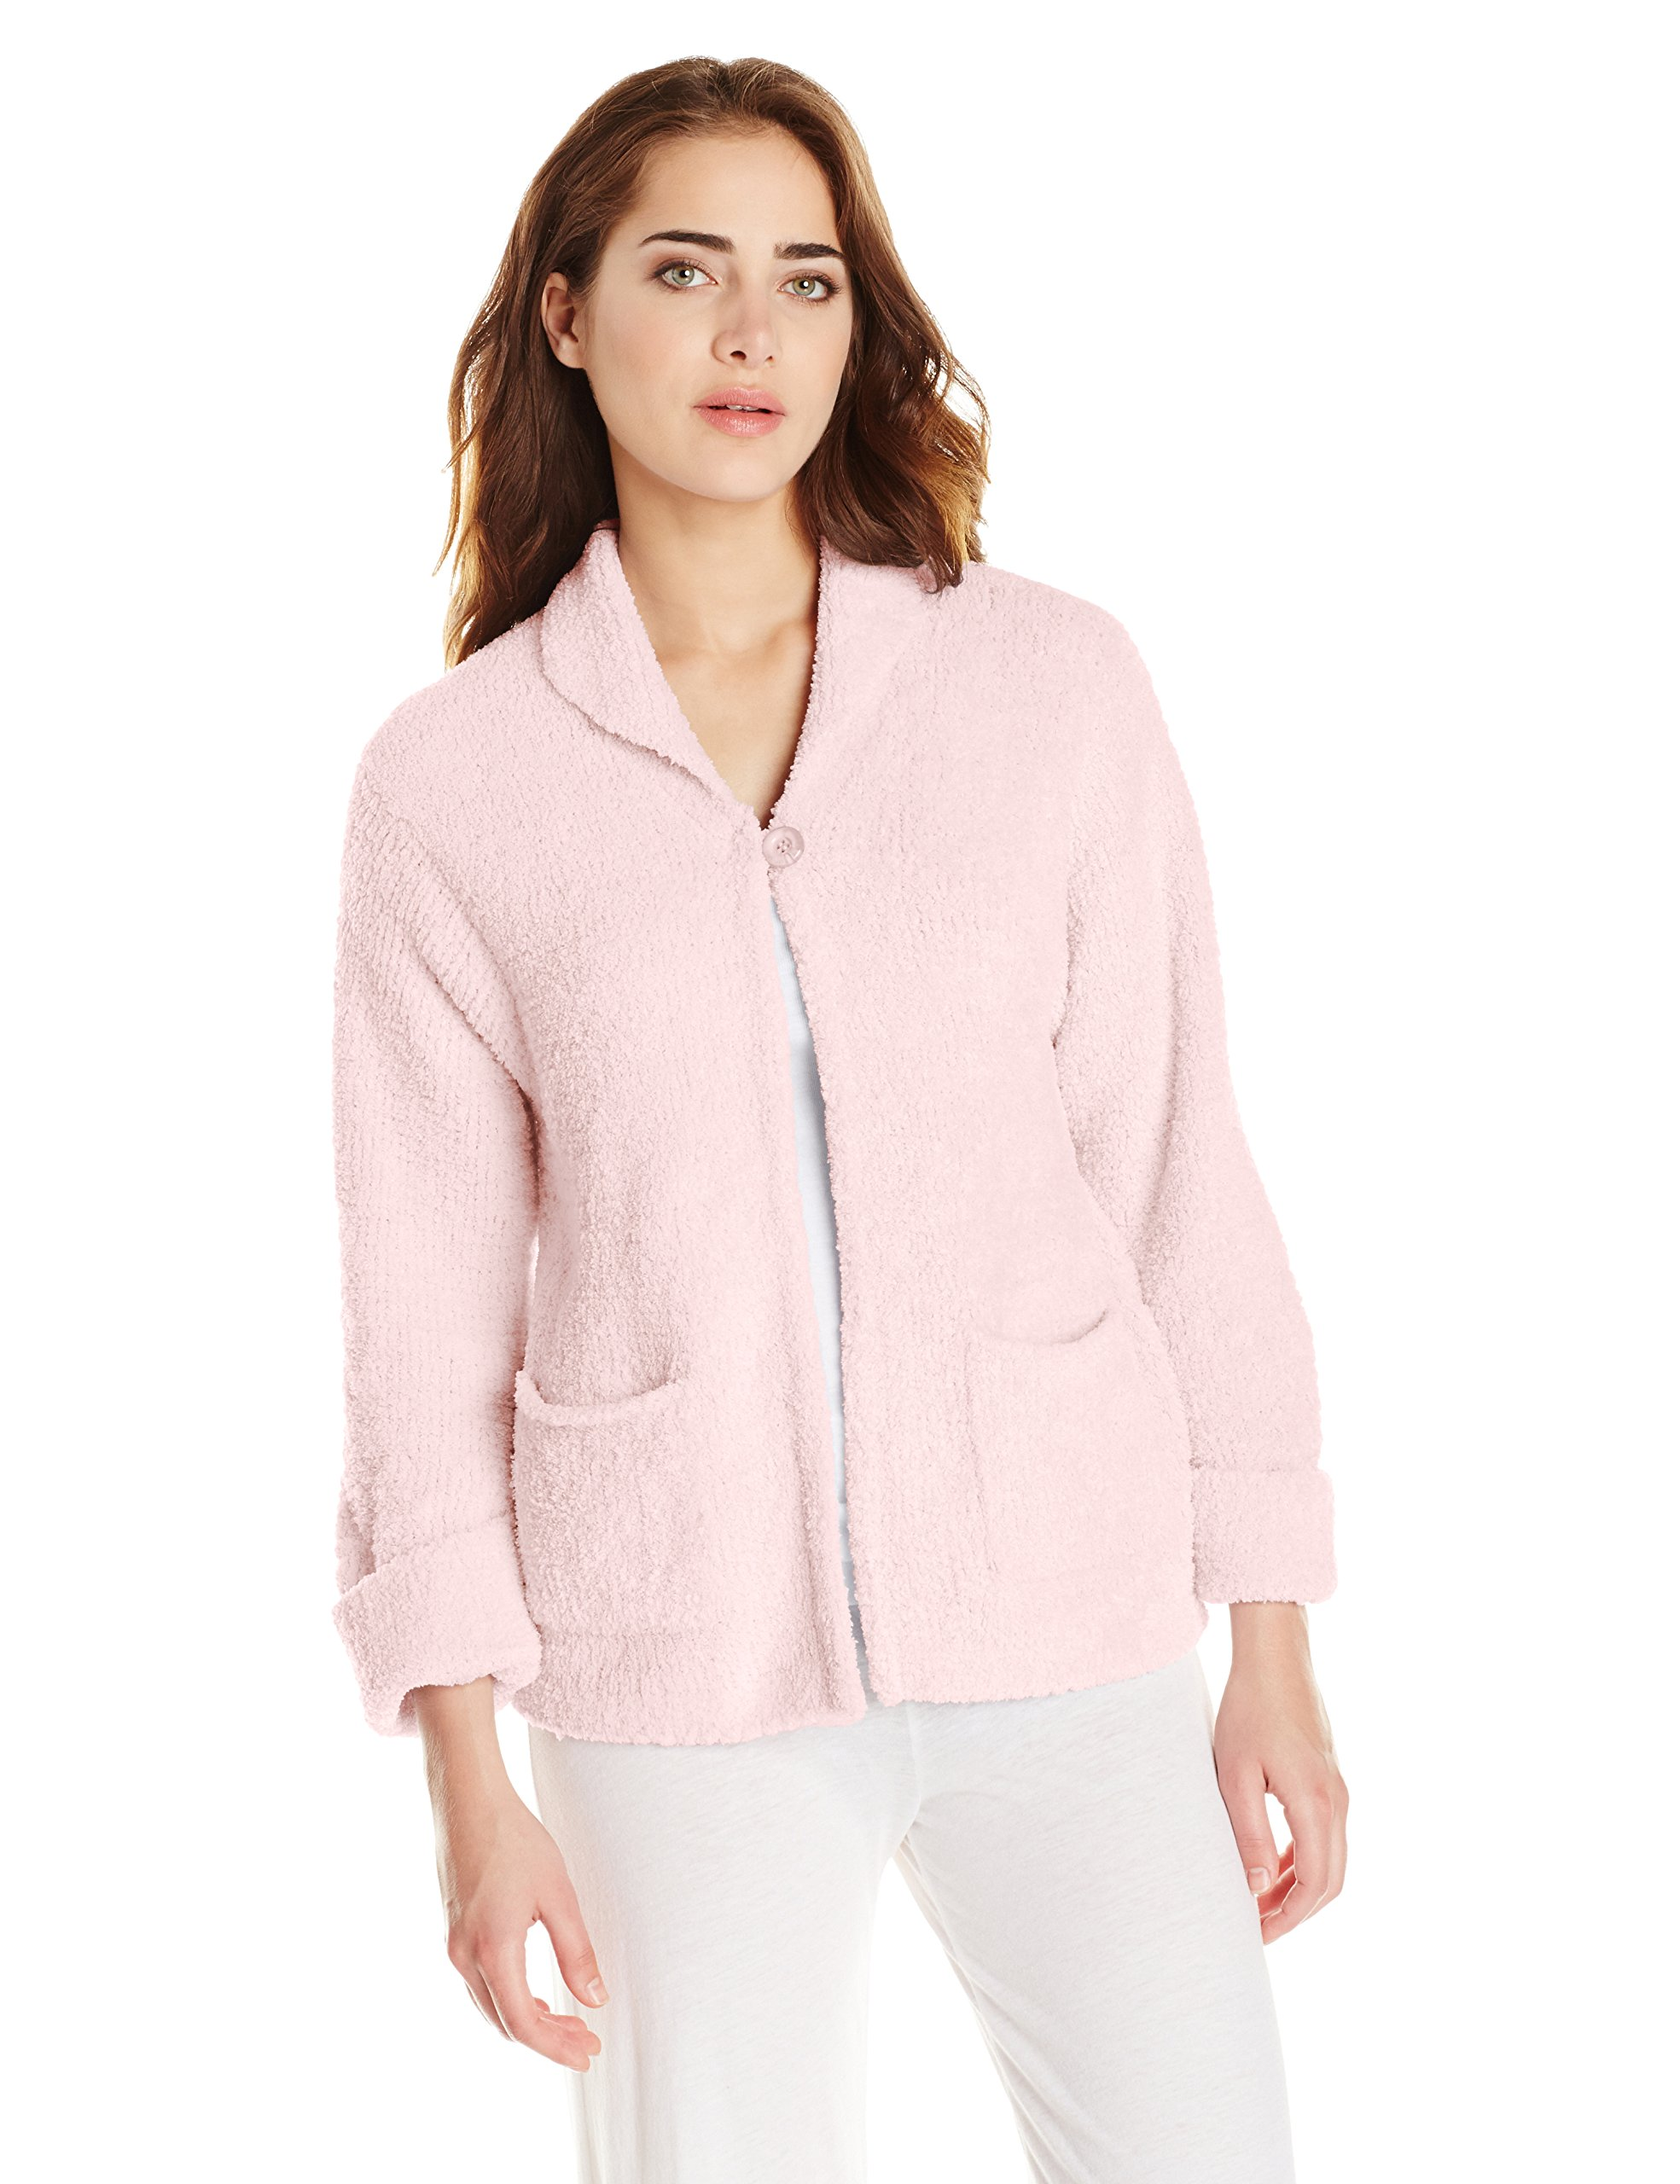 Casual Moments Women's Bed Jacket, Pink, Large